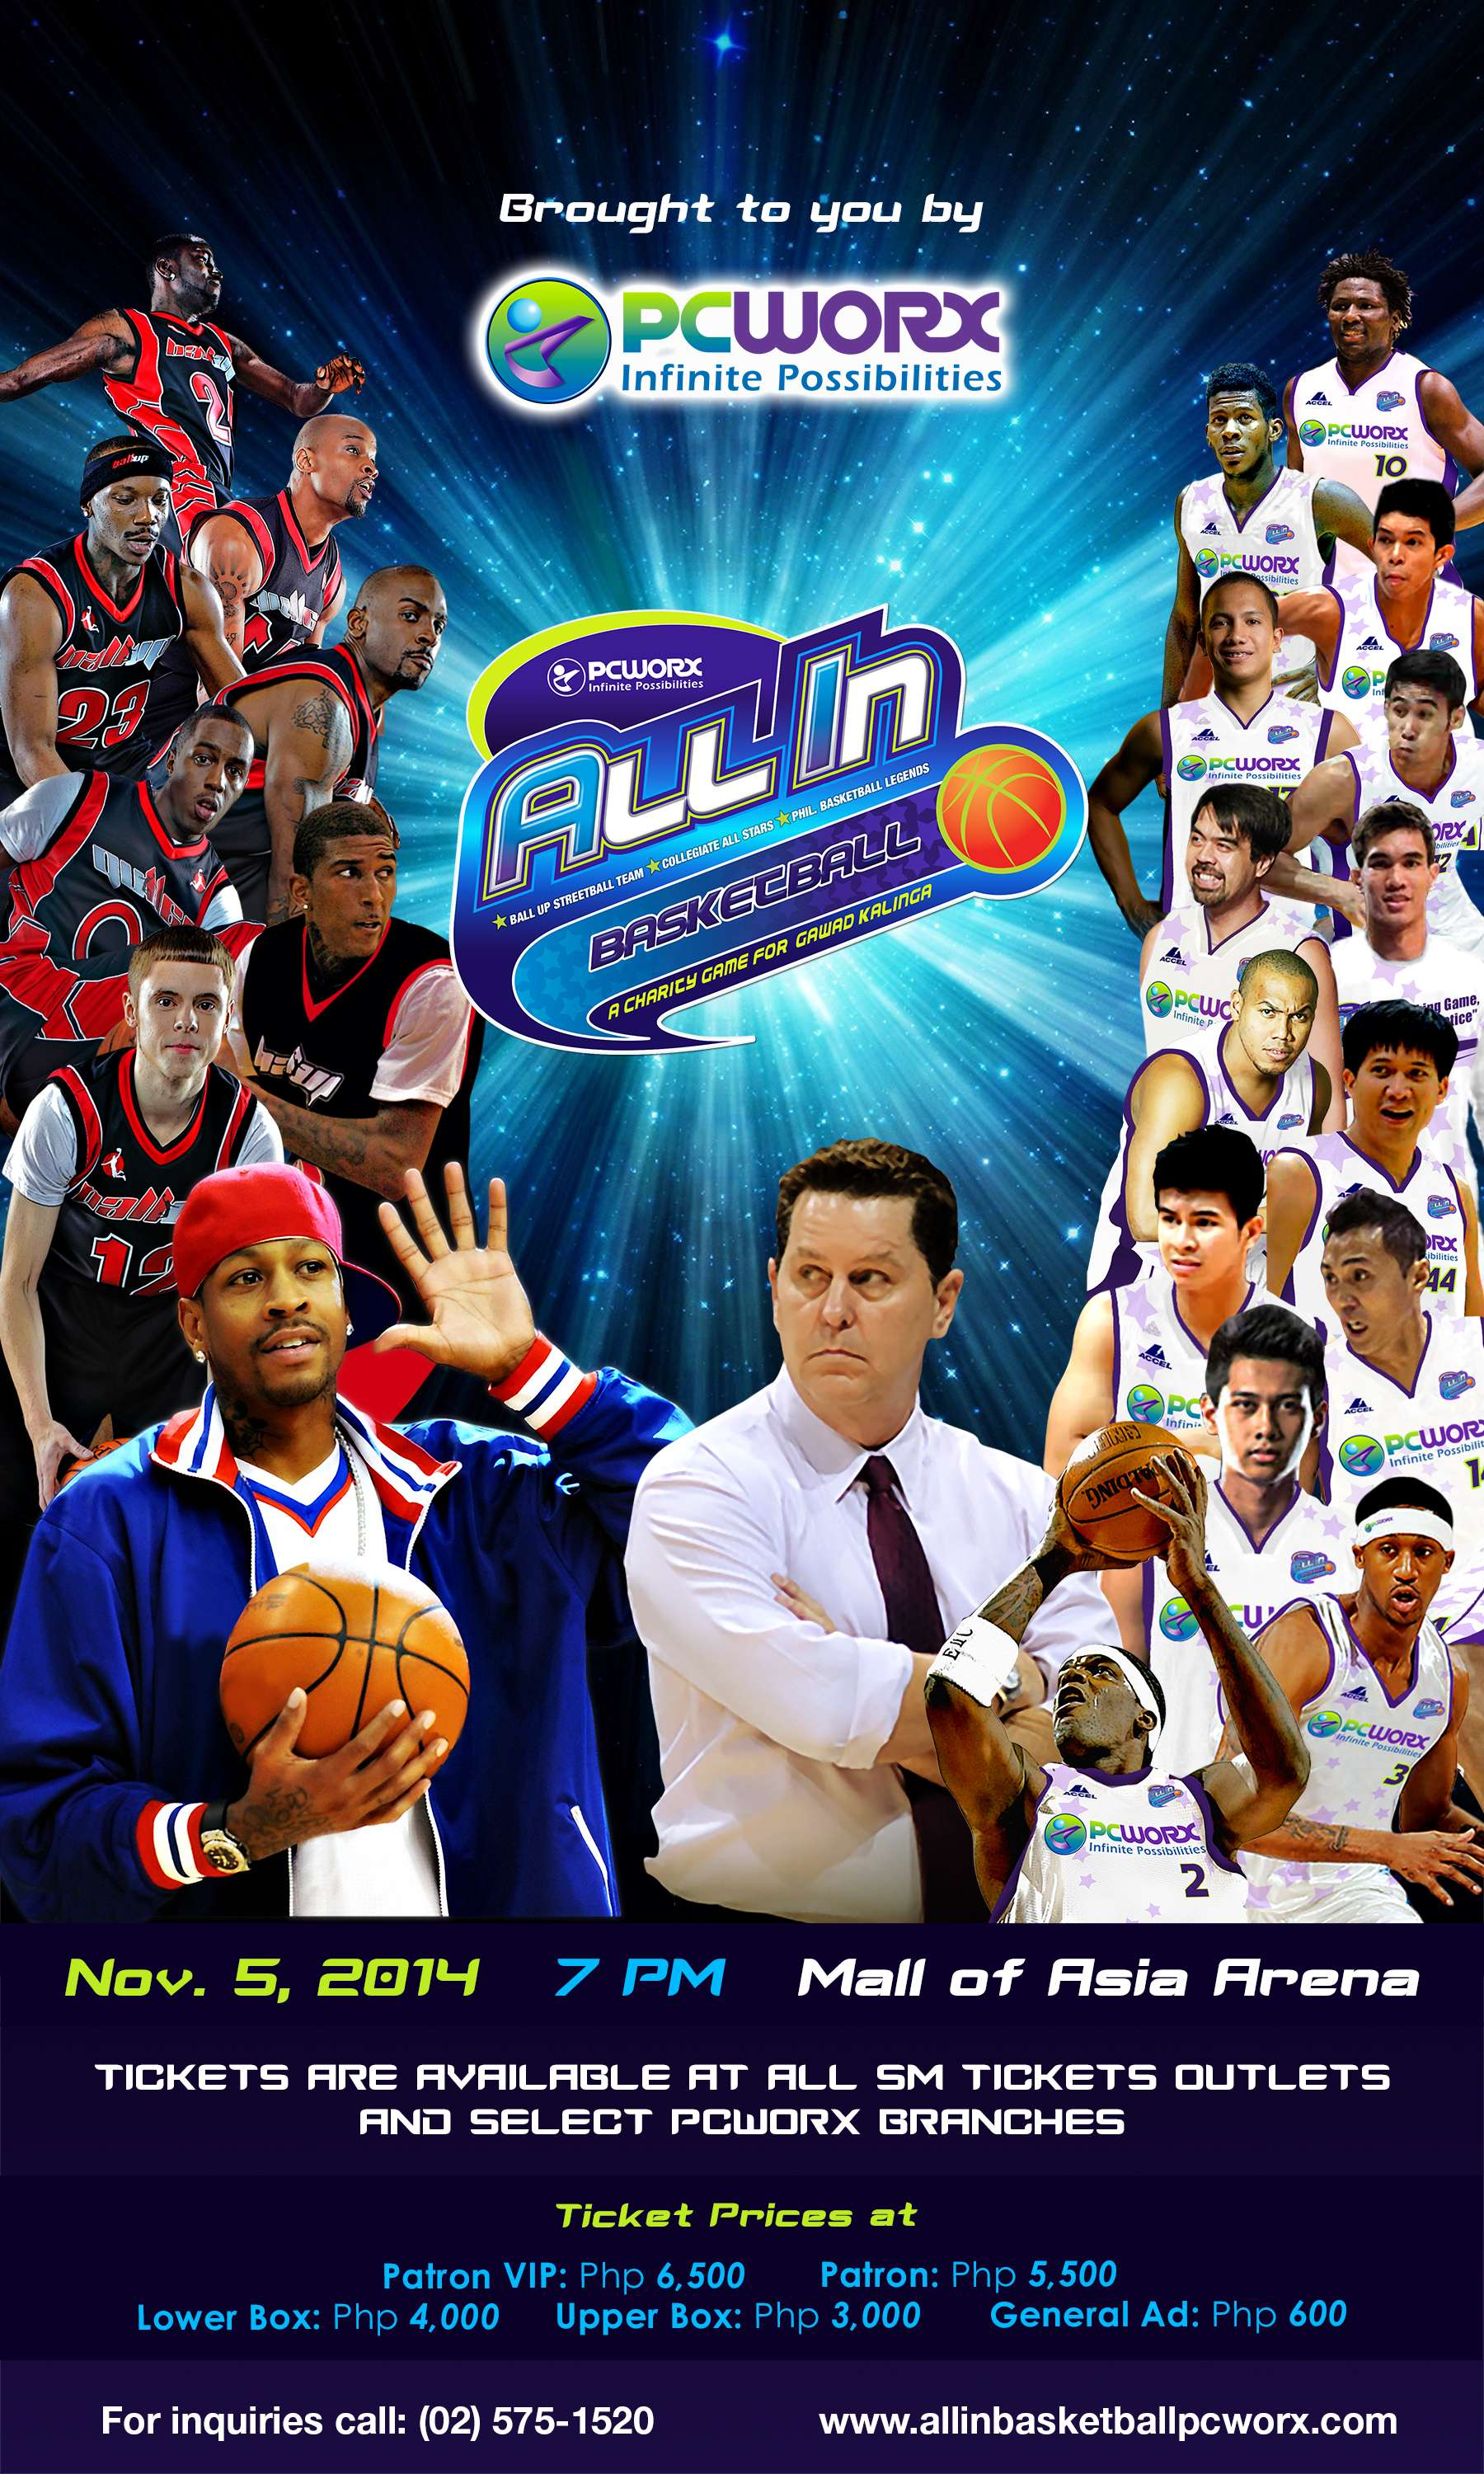 SPIN x PC WORX ALL IN BASKETBALL GAME TICKET GIVEAWAY | Promo | SPIN